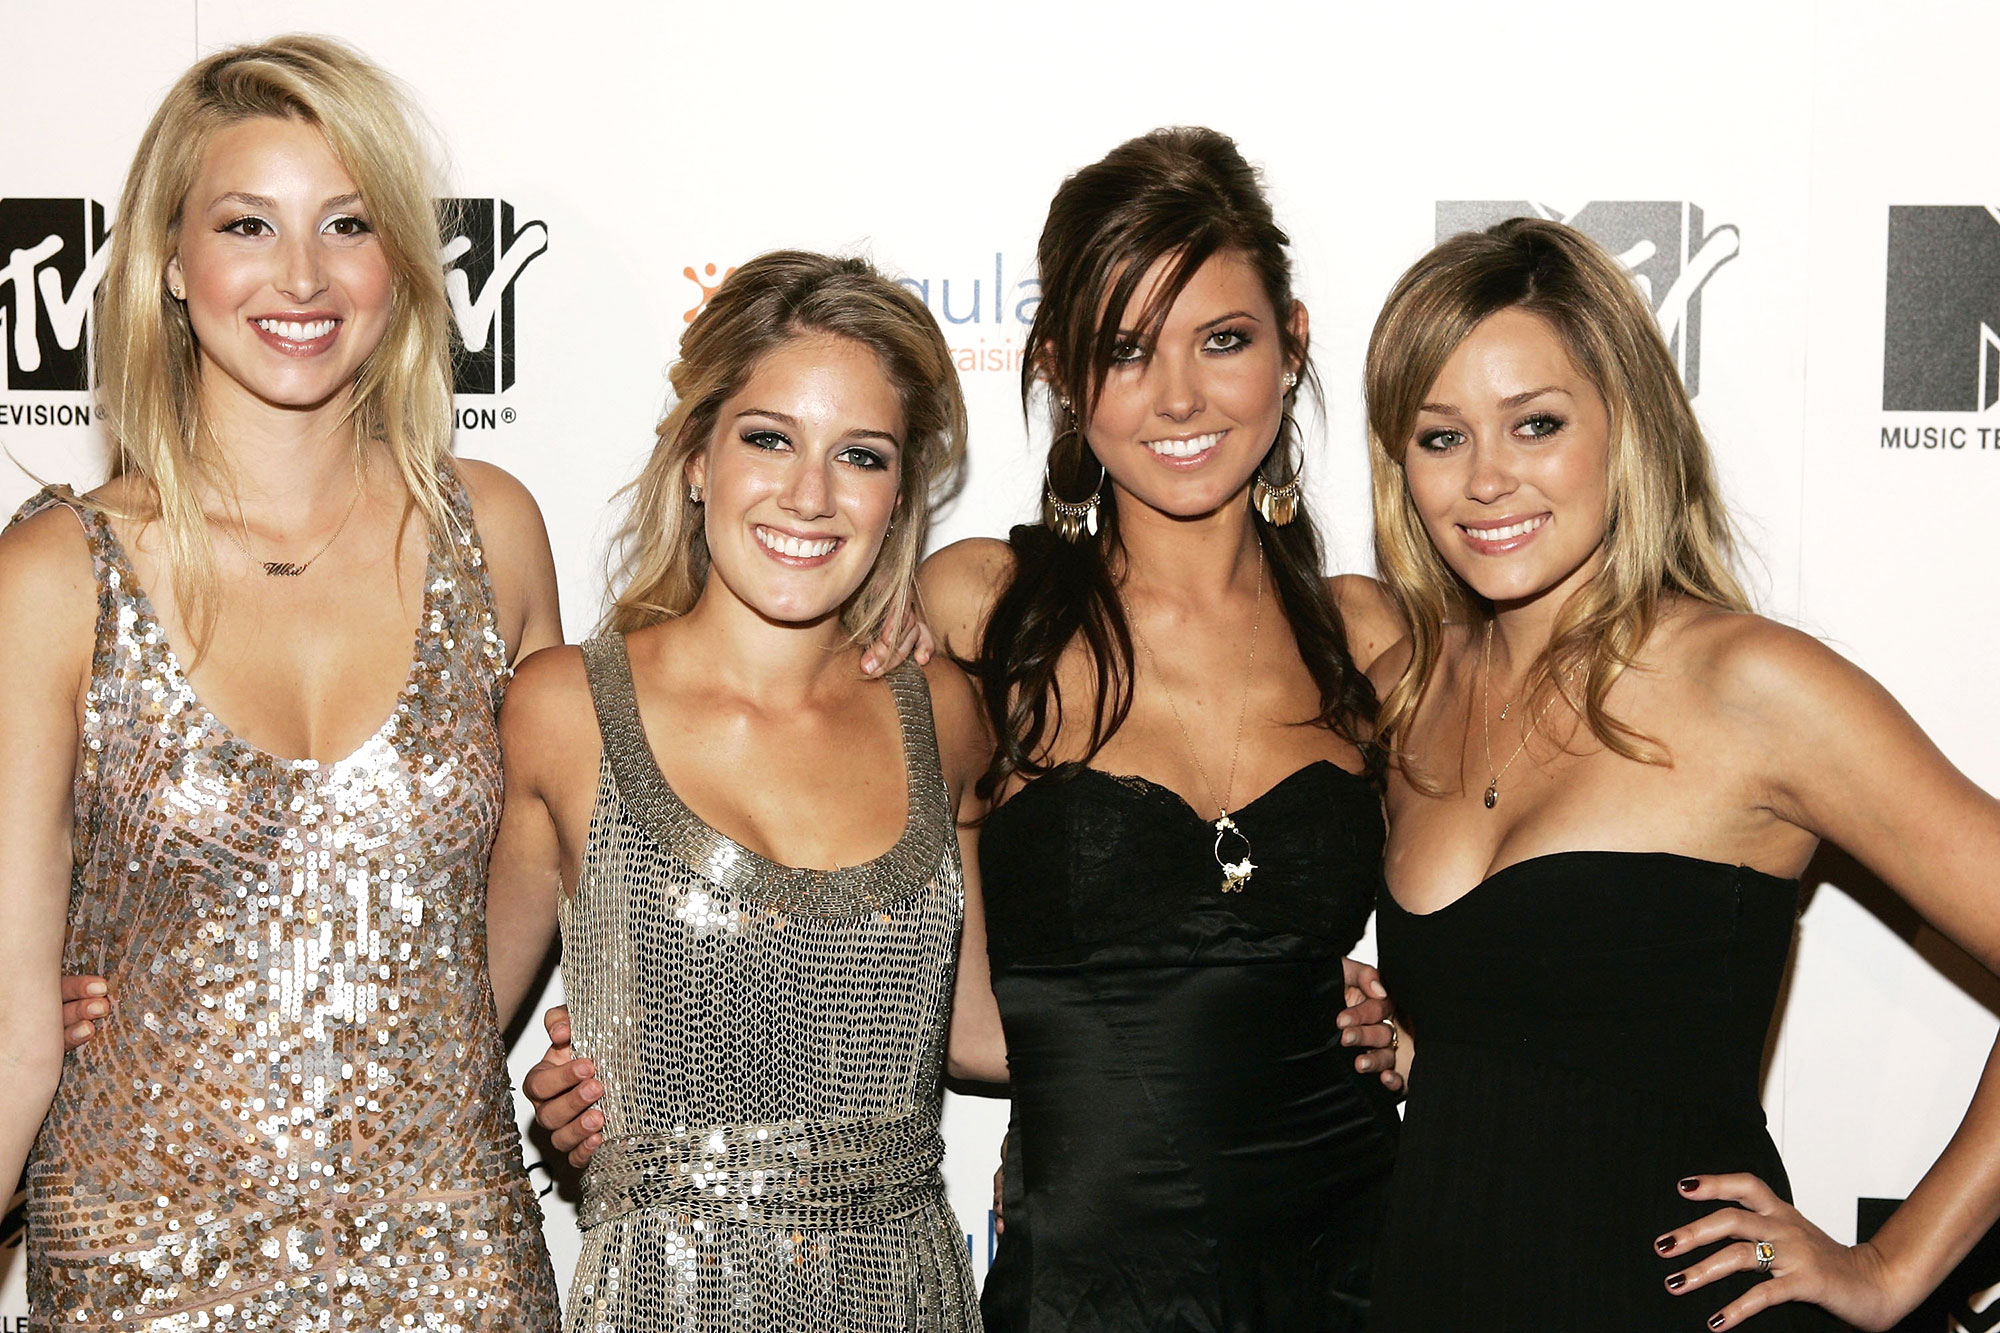 """the hills reboot lauren conrad audrina patridge whitney port heidi montag - Cast members (L-R) Whitney, Heidi, Audrina and Lauren attend the viewing party for the MTV Music Television documentary/drama show """"The Hills"""" on May 31, 2006 at club LAX in Los Angeles, California. (Photo by Vince Bucci/Getty Images For MTV)"""